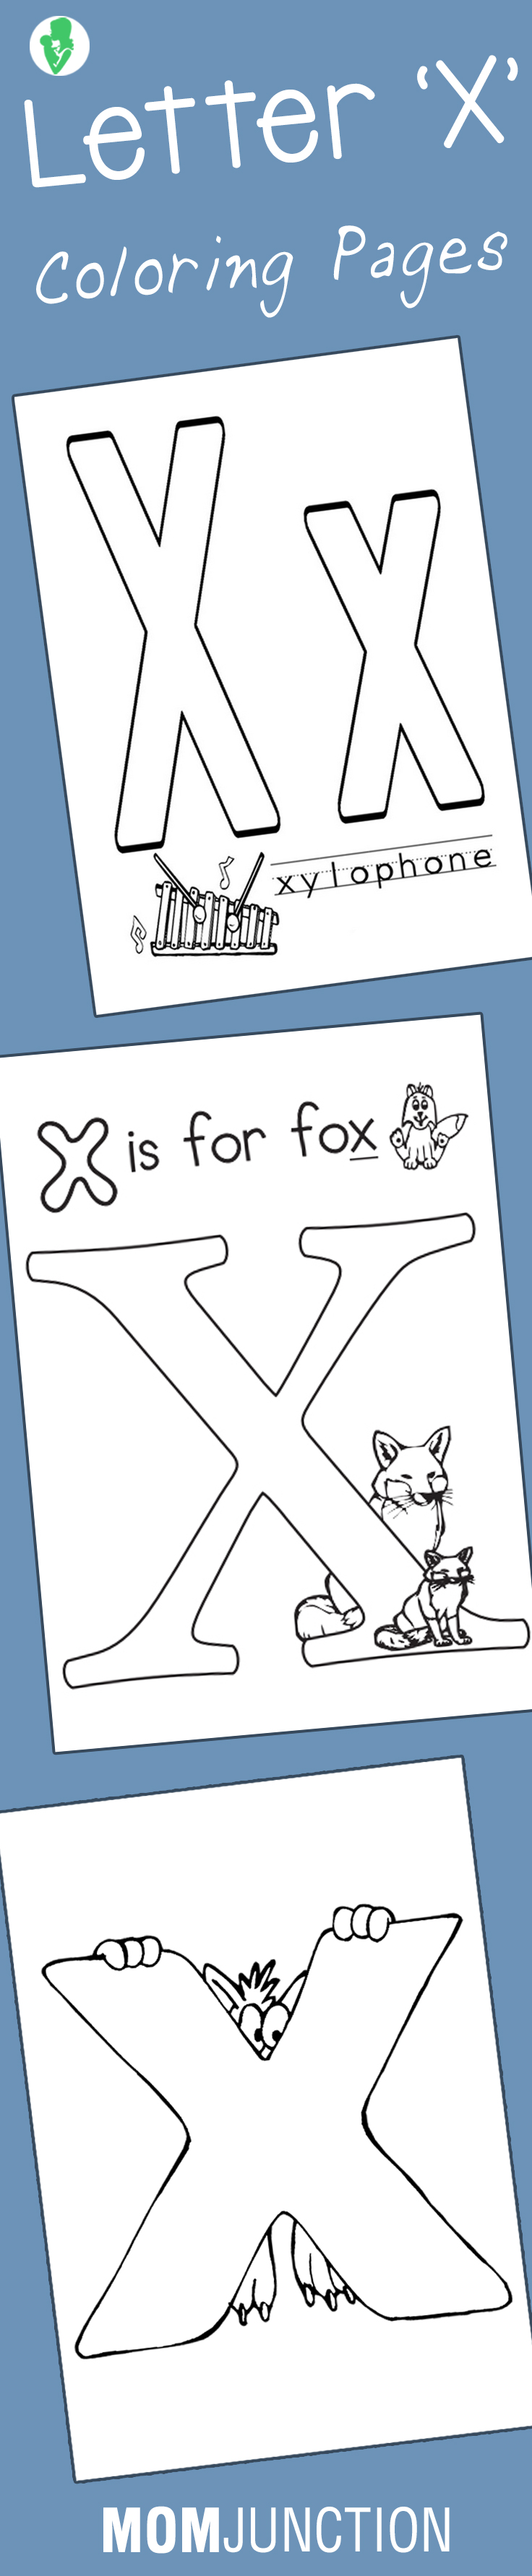 Free printable x-ray coloring pages - Free Printable X-ray Coloring Pages 17